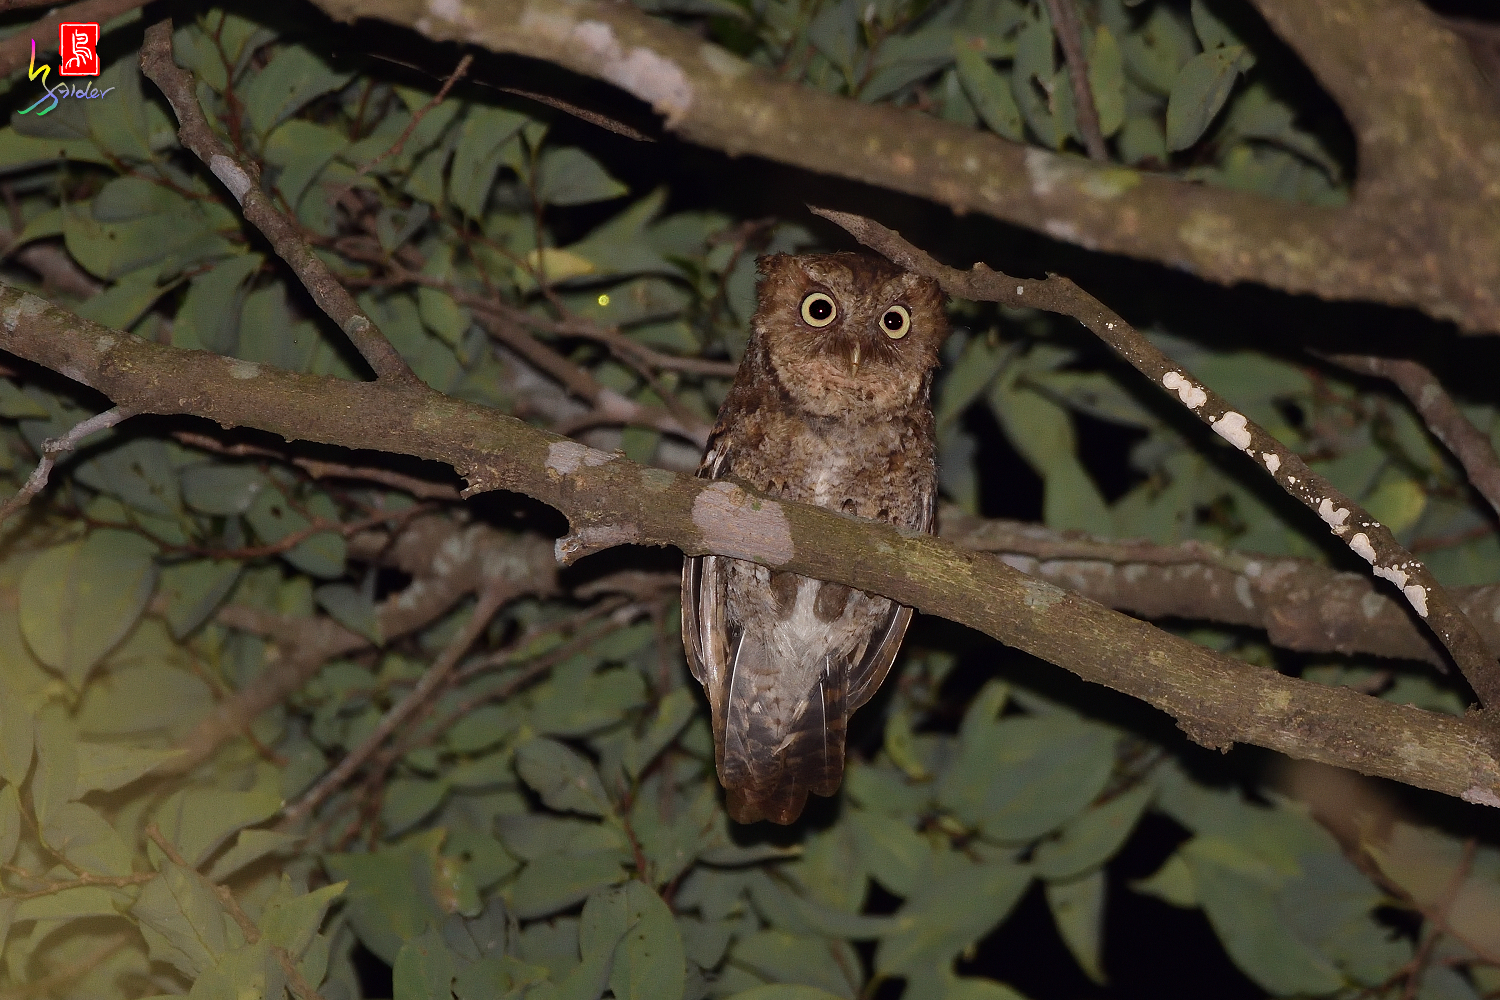 Moutain_Scops_Owl_3542_Redeye